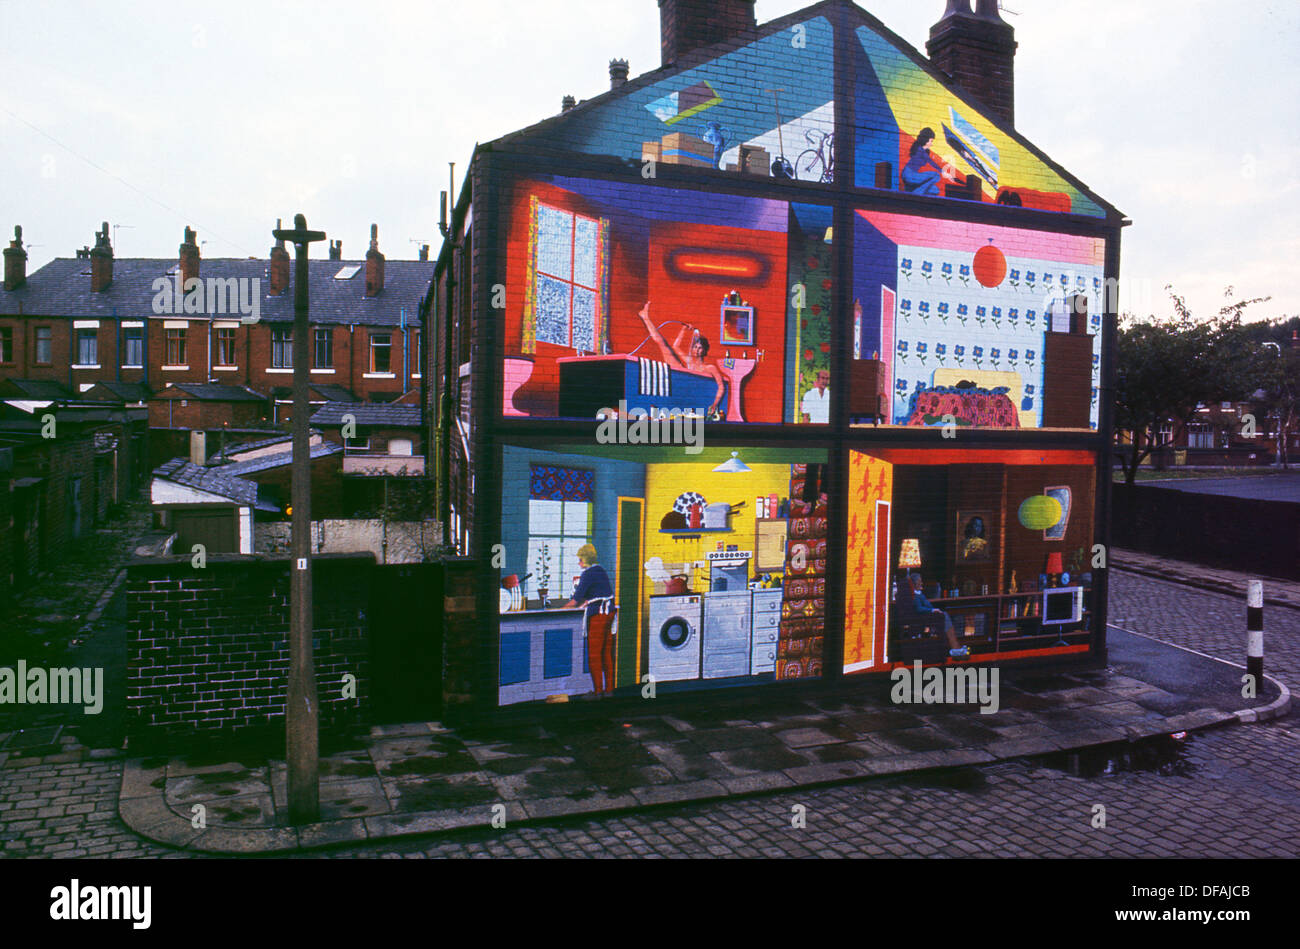 Wonderful Walter Kershaw Wall Mural INSIDE OUT HOUSE On The Gable End Of A Rochdale  House Lancashire UK 1975 KATHY DEWITT